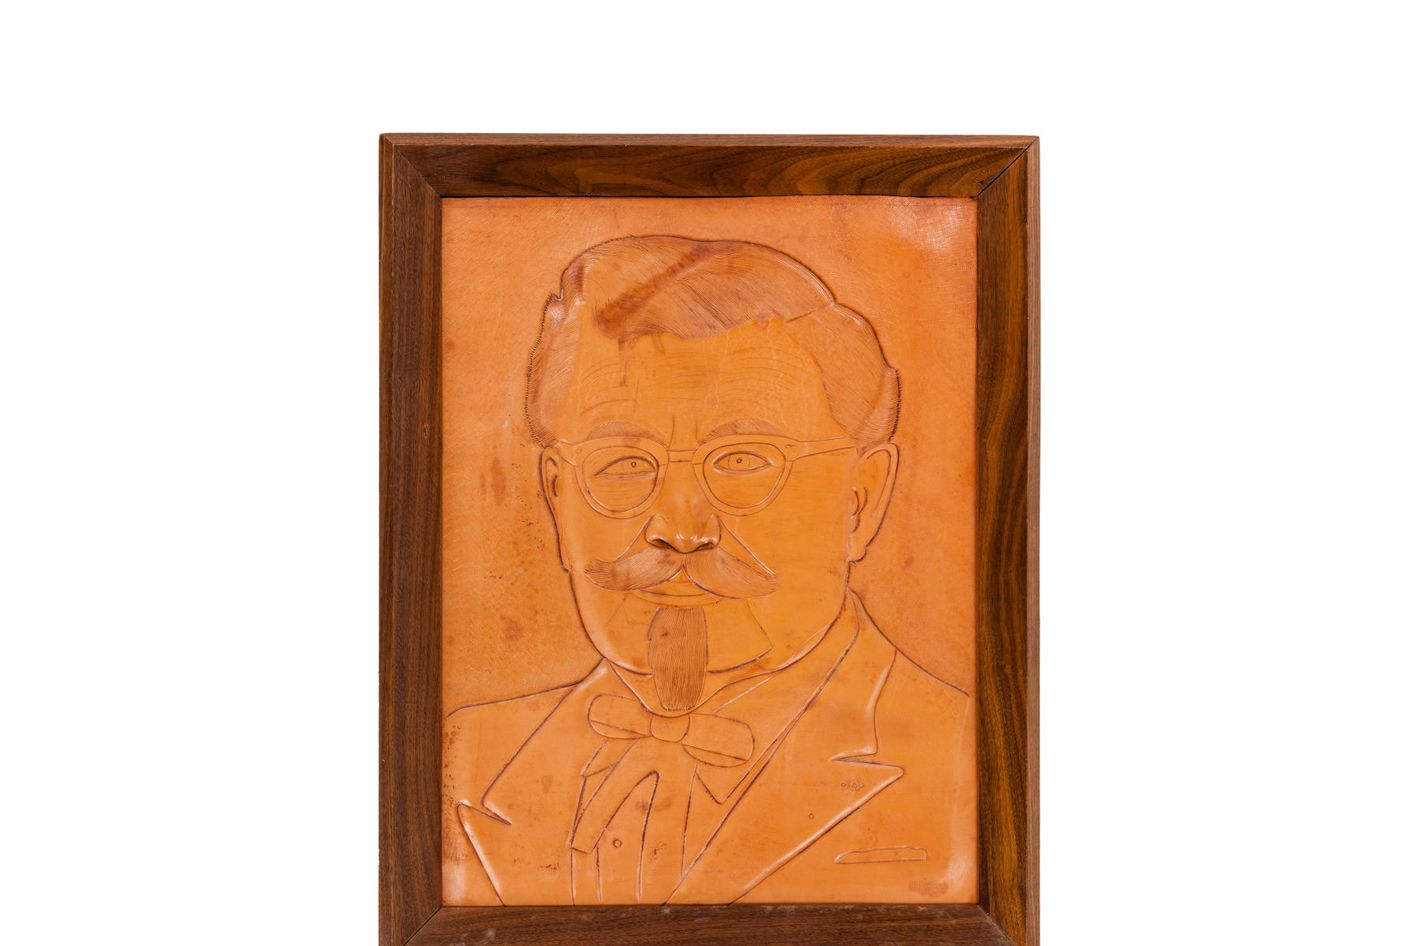 Now's your chance to get a leather portrait of Sanders!